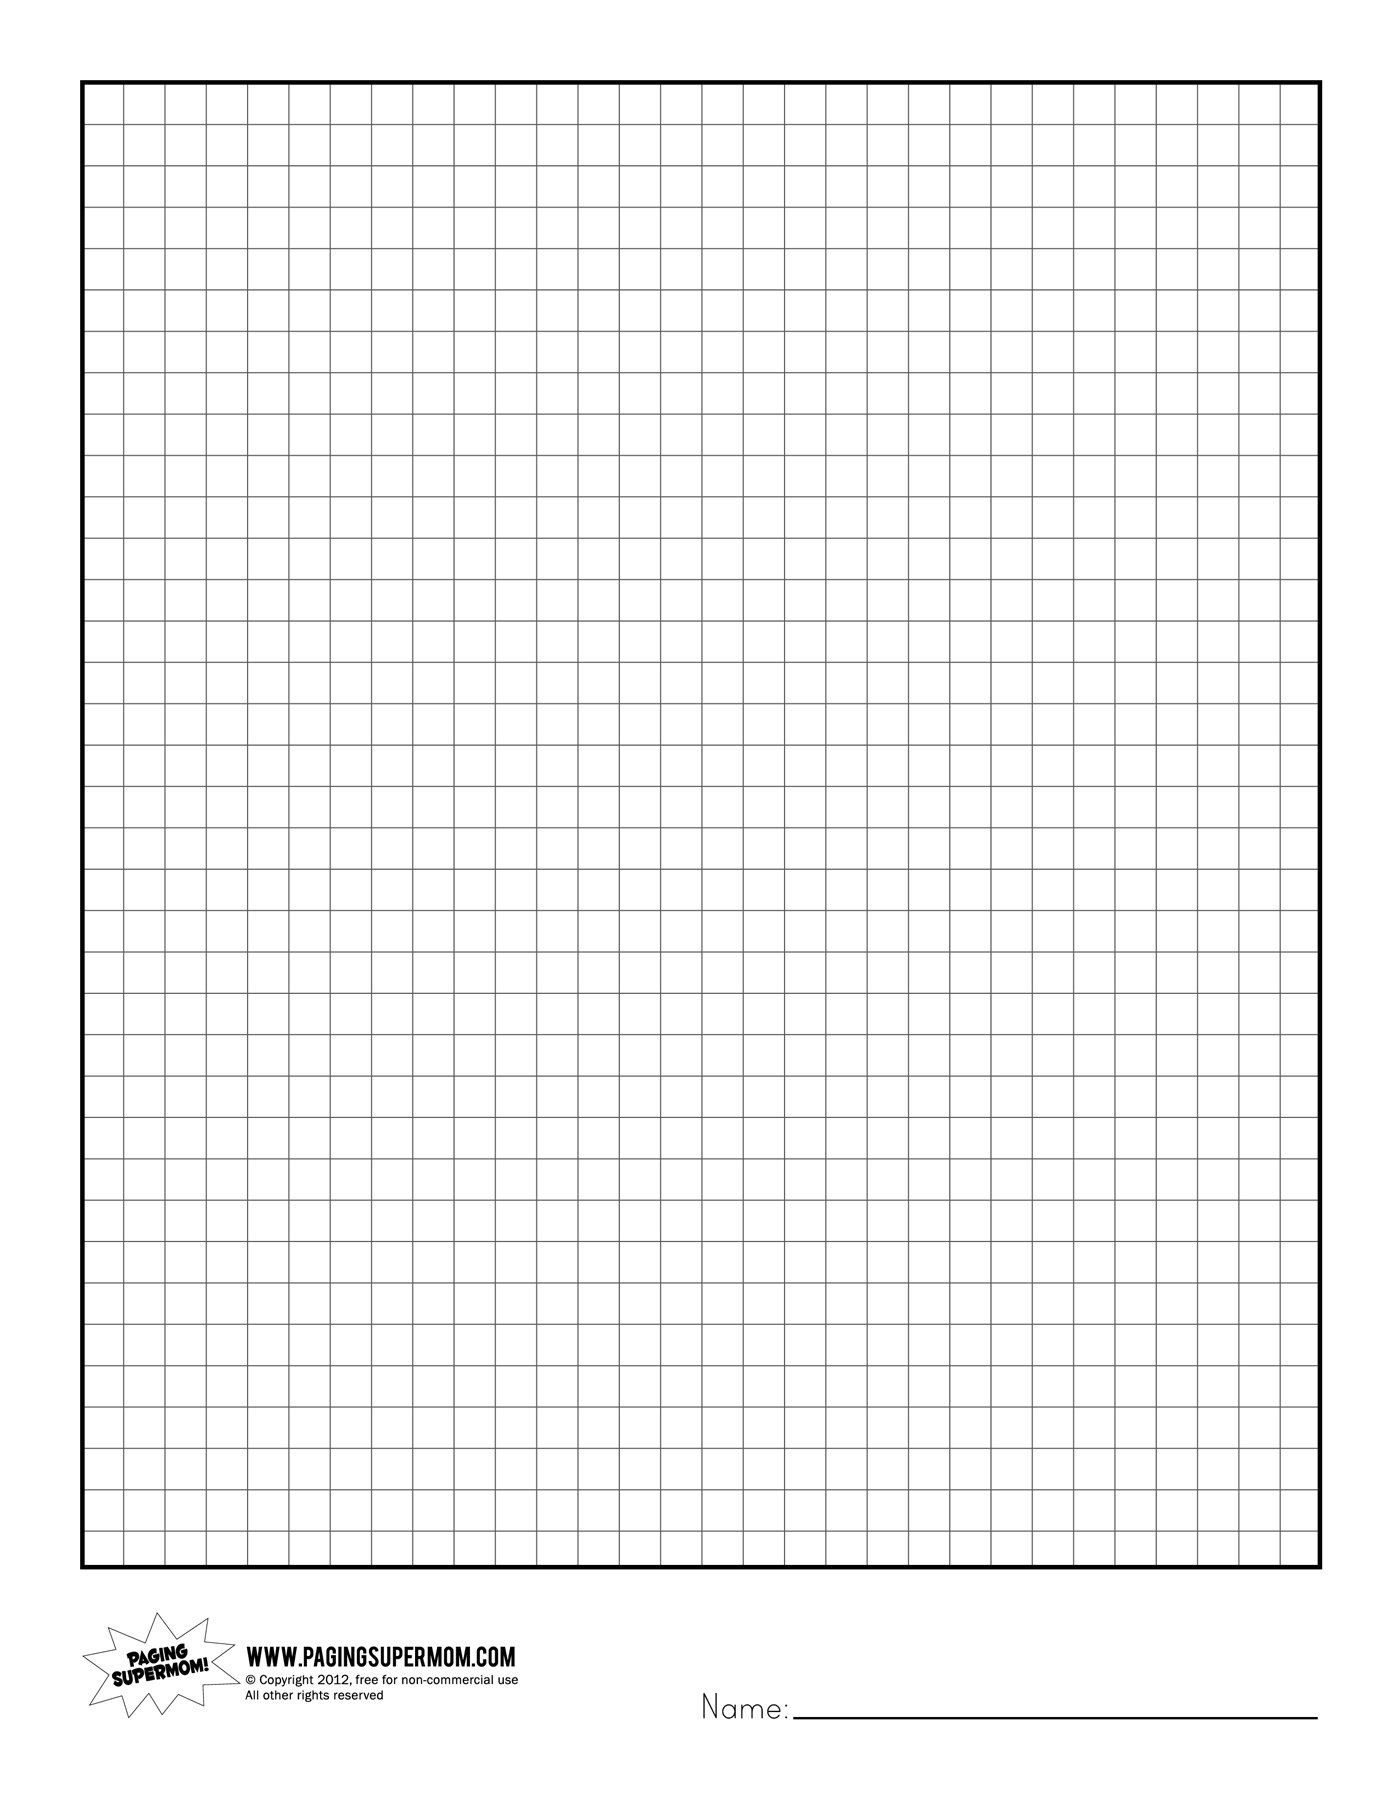 Blogger Bargains FREE printable graph paper – Print Free Graph Paper No Download